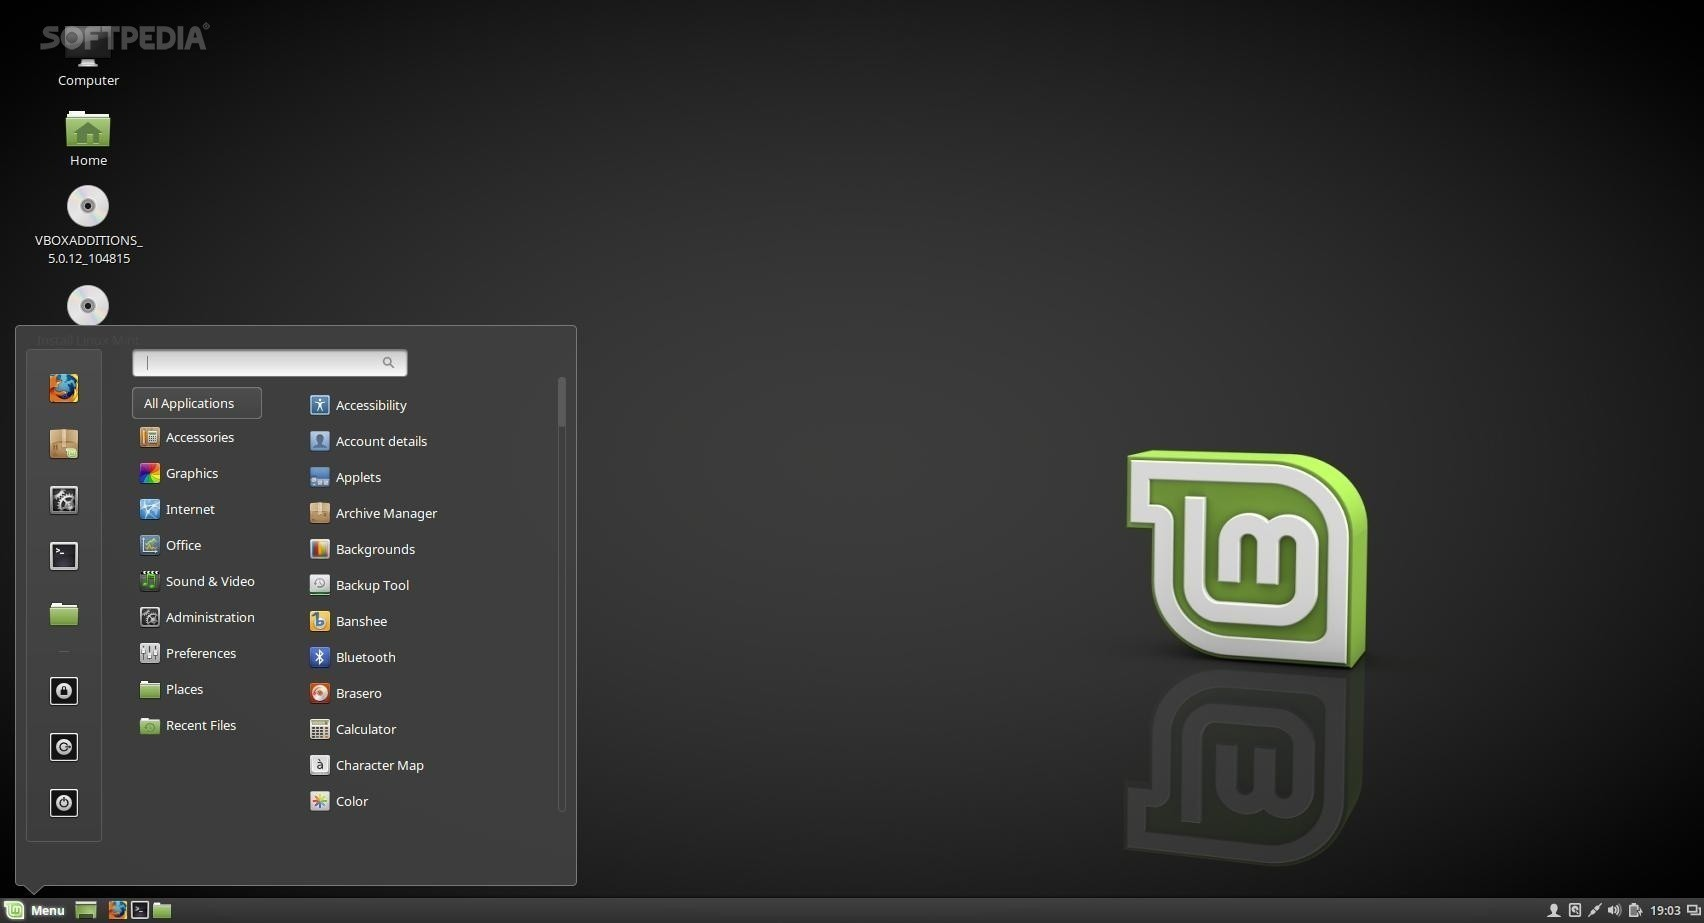 linux-mint-18-sarah-cinnamon-and-mate-editions-officially-released-505847-2